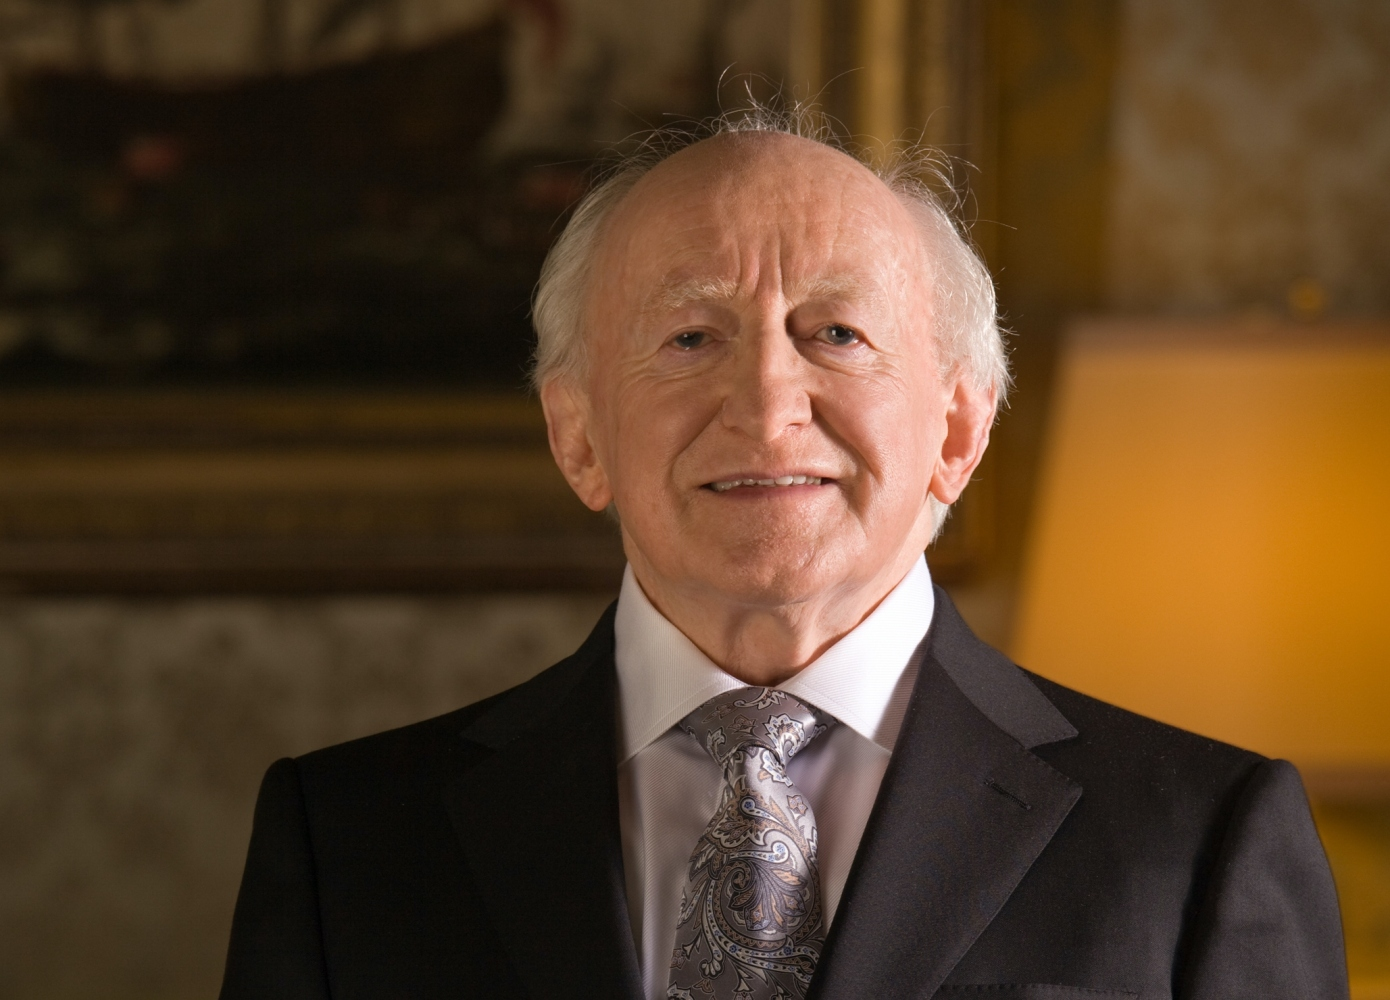 President Higgins official photograph with signature